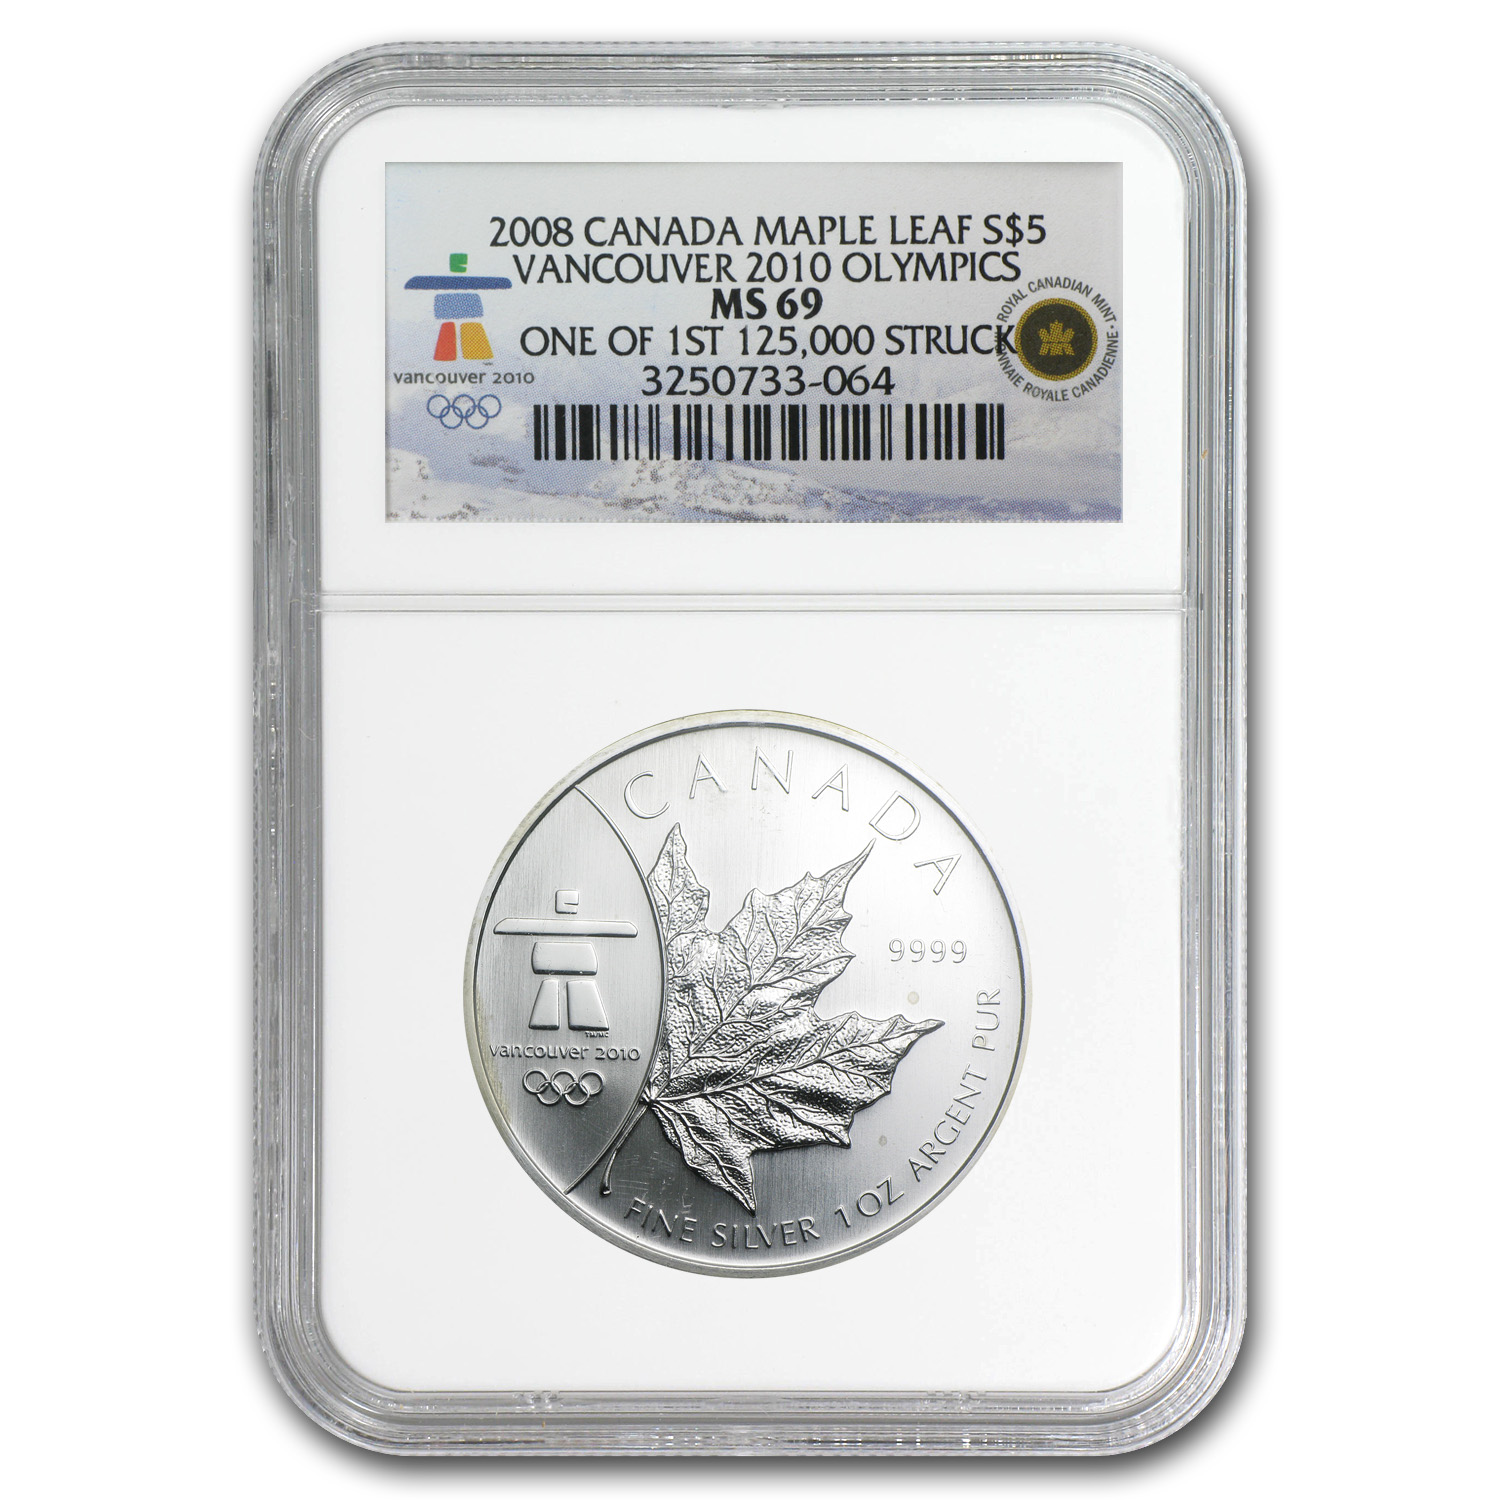 2008 Canada 1 oz Silver Maple Leaf MS-69 NGC (Vancouver)